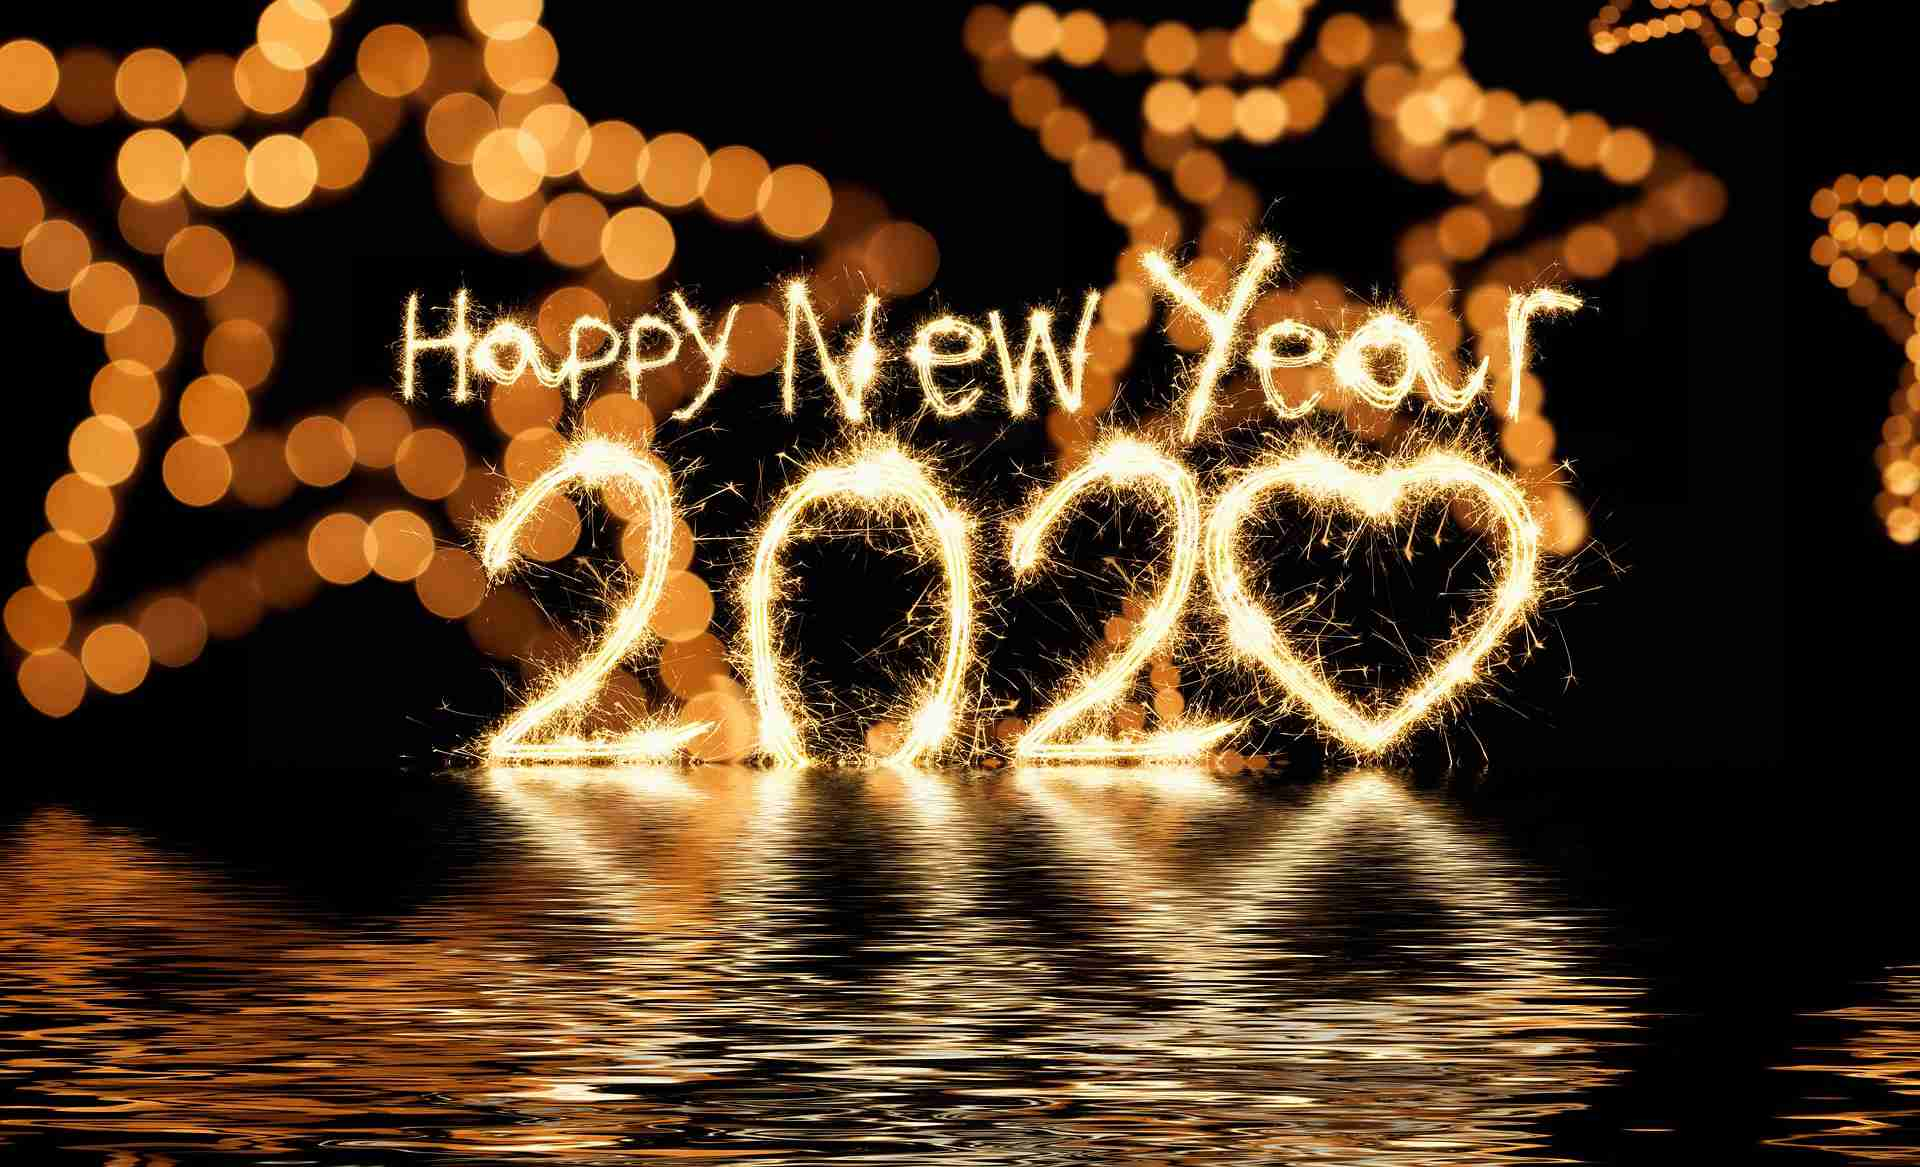 Happy New Year S Eve Countdown Clock 2020 Wallpapers